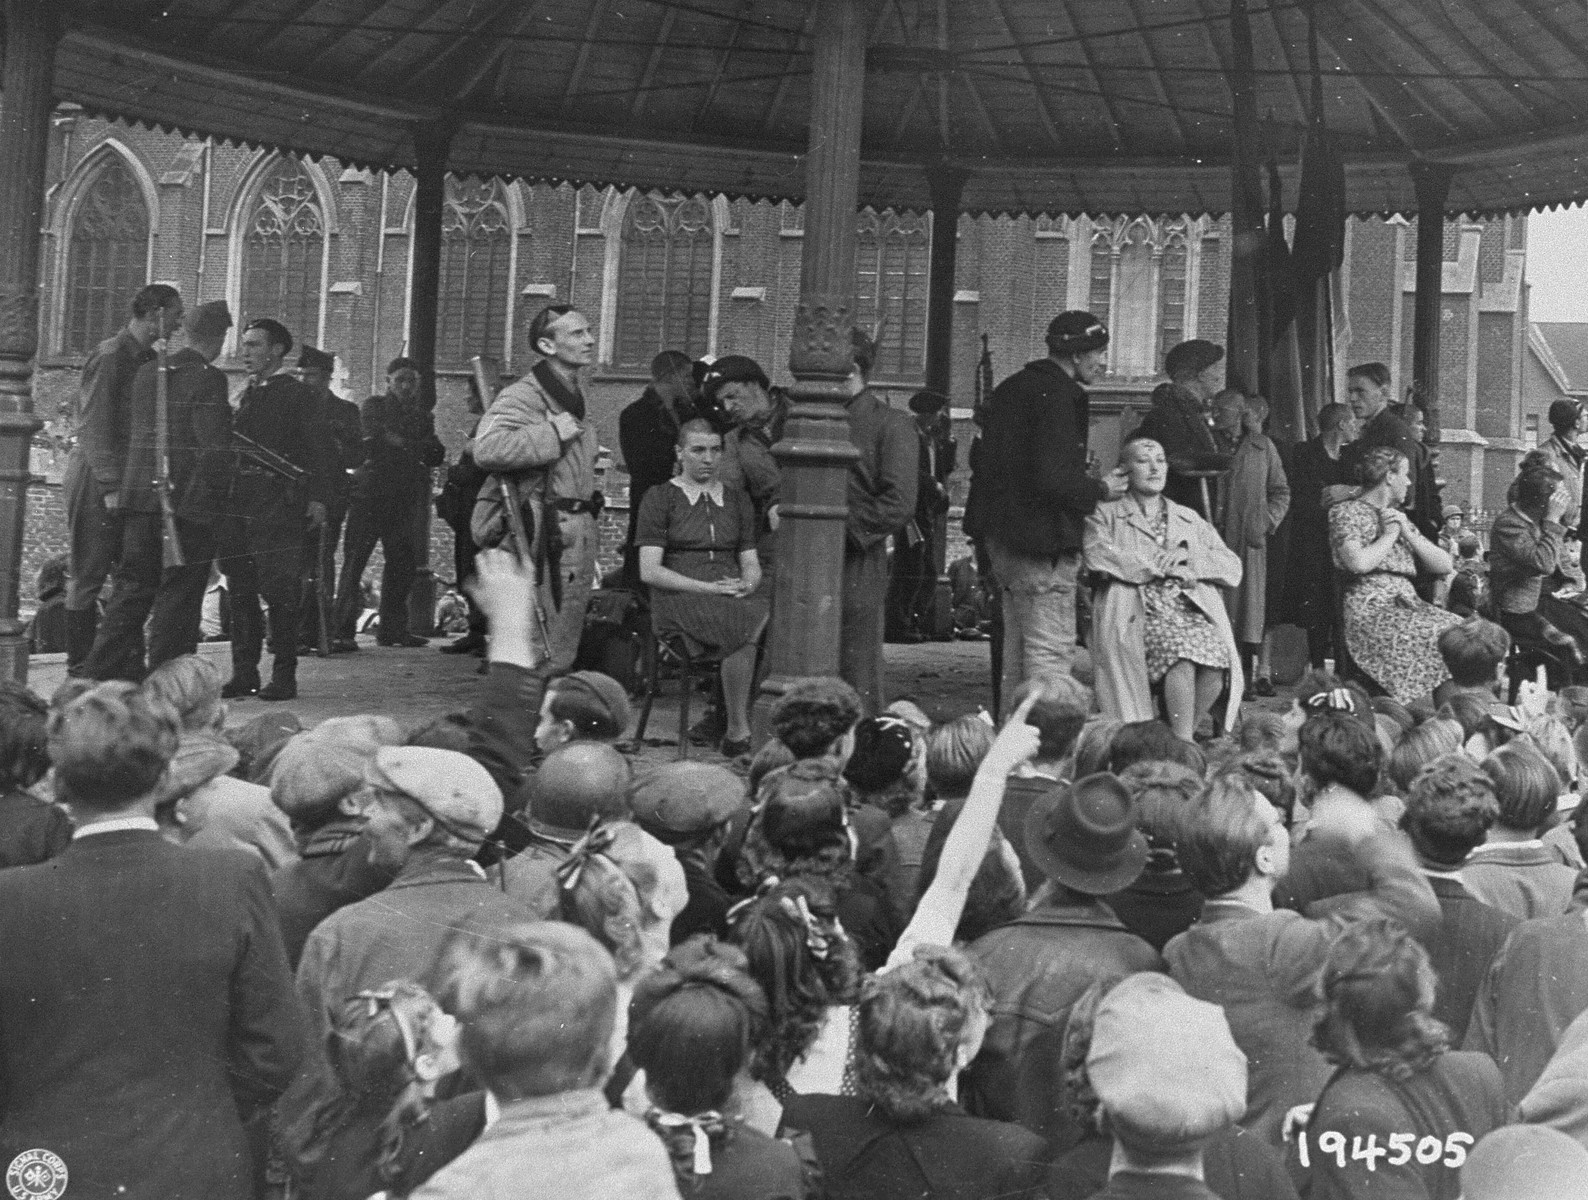 Members of the Belgian resistance shave the heads of women who collaborated with the Germans during the occupation.